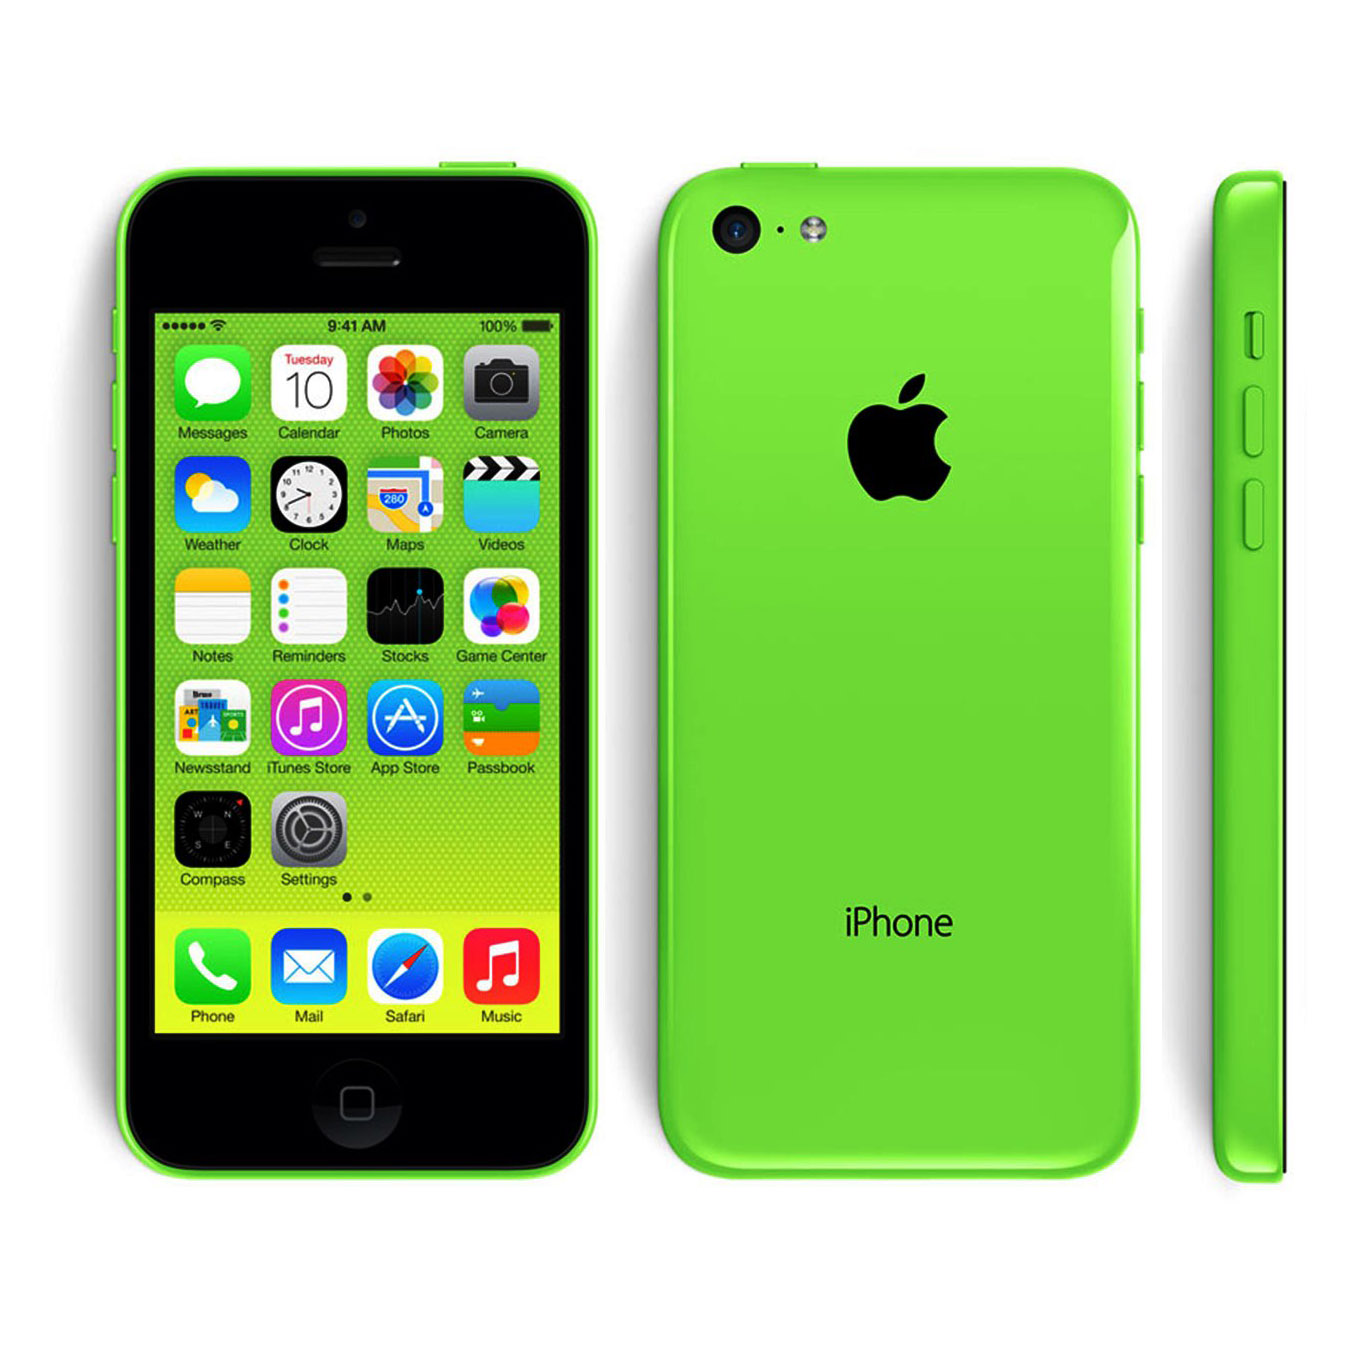 iphone 5c unlocked apple iphone 5c 8gb cdma gsm lte factory unlocked 1334